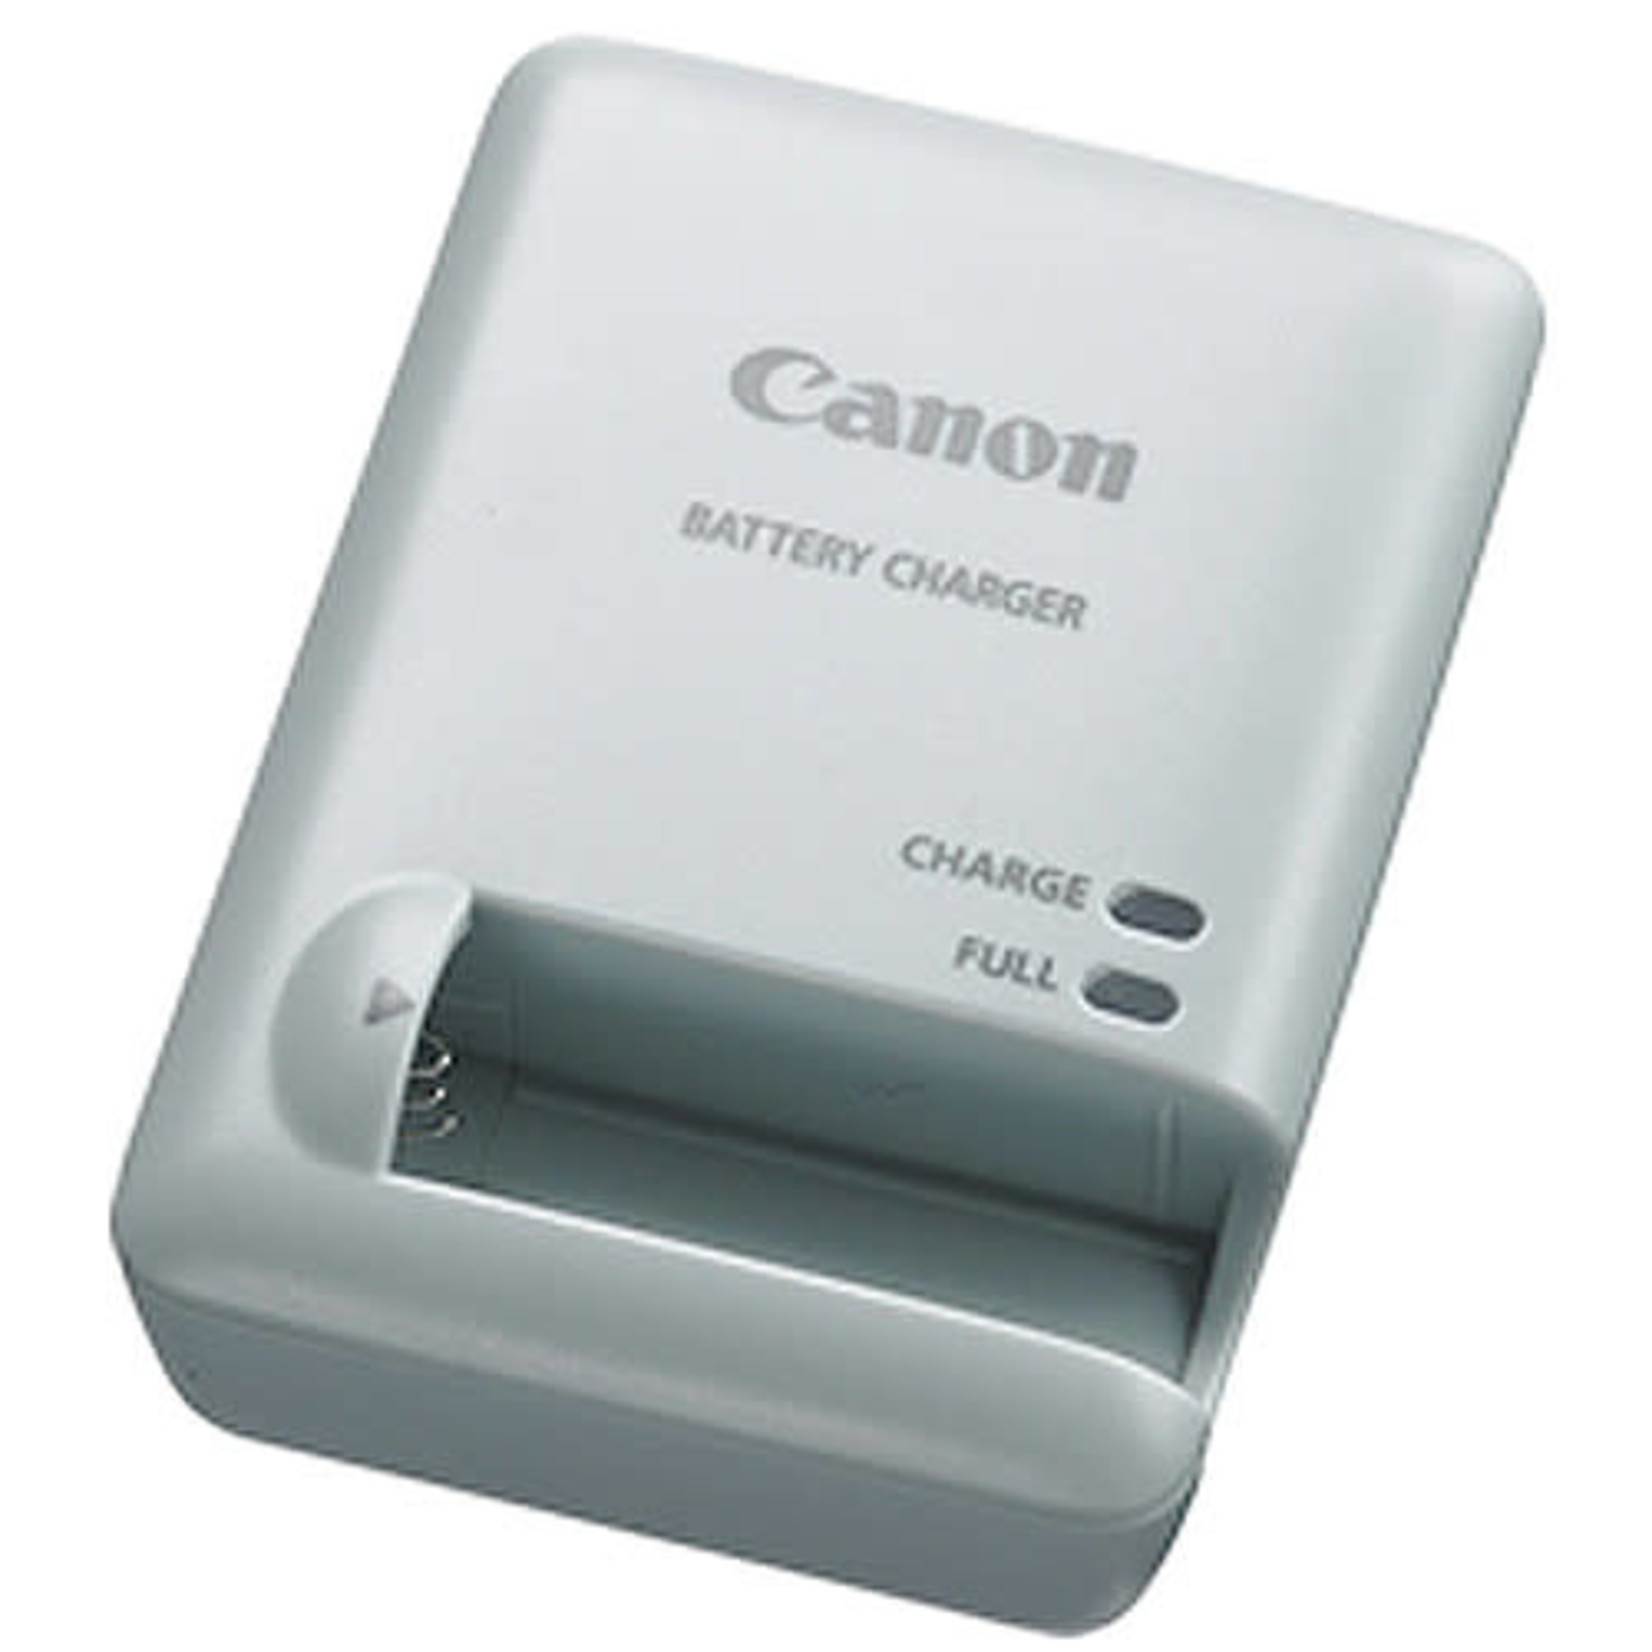 Canon Canon CB-2LB Battery Charger for NB-9L Battery